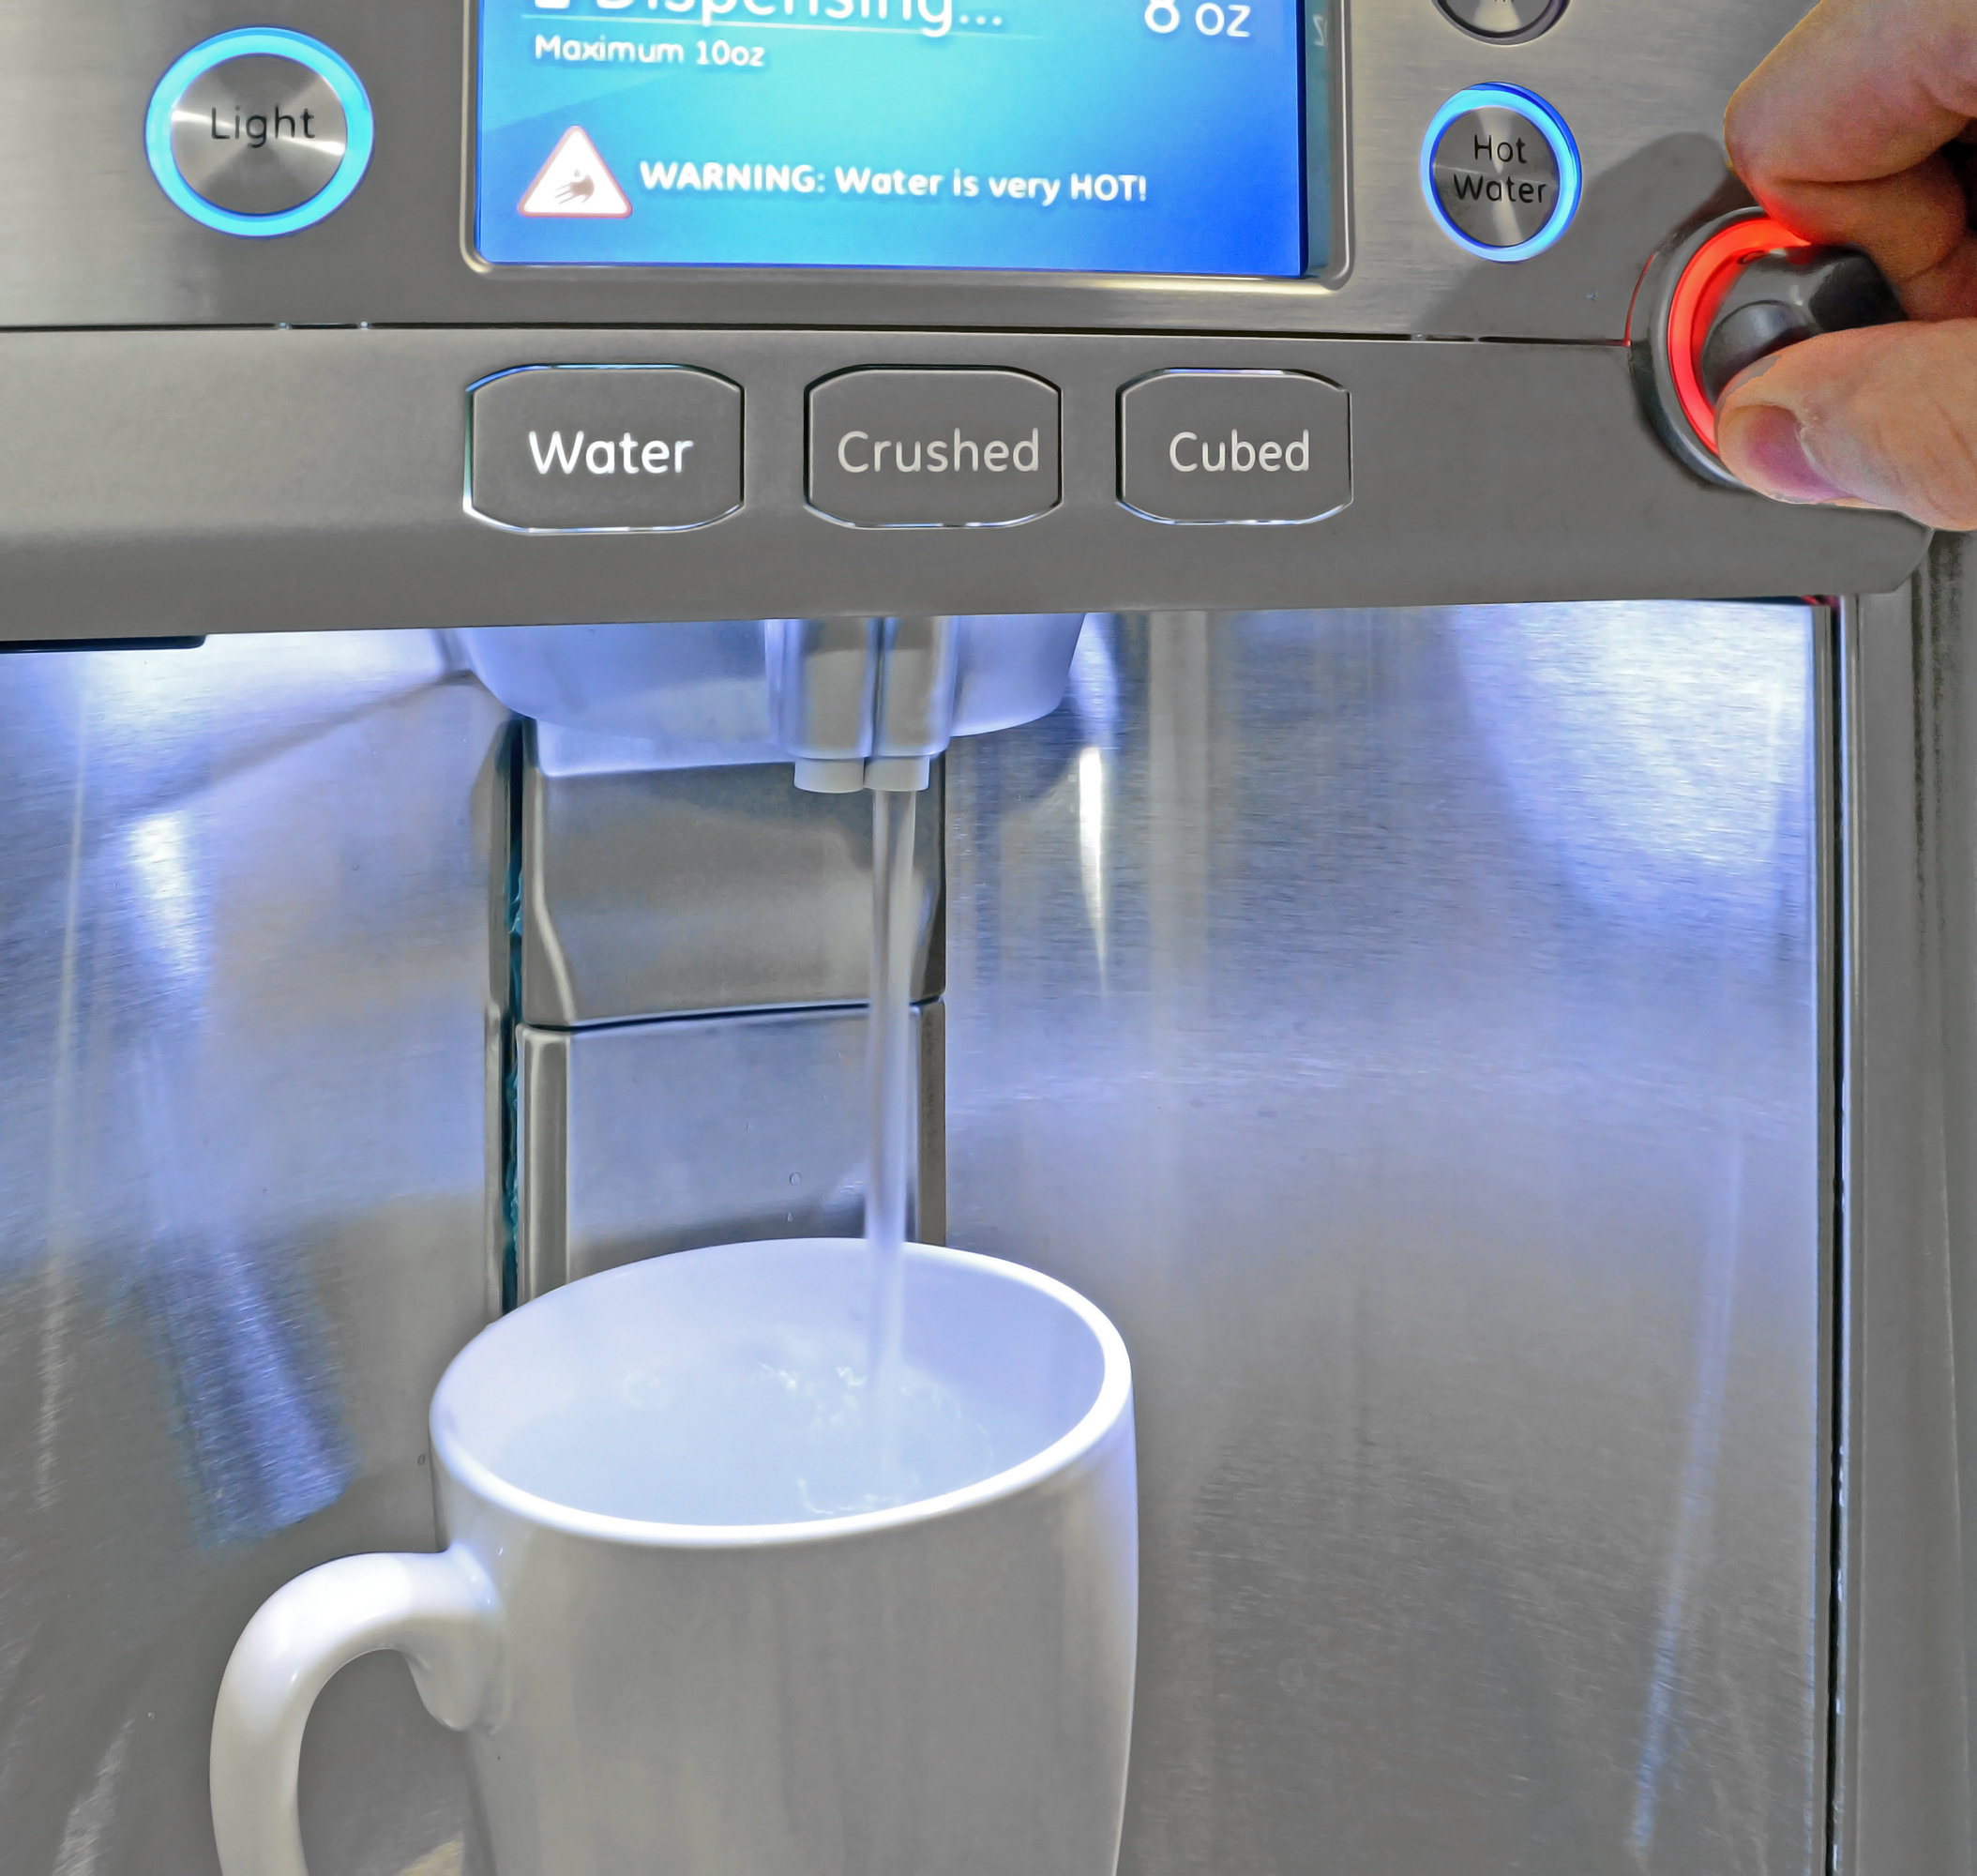 The GE Cafe CFE28TSHSS's dispenser can heat water anywhere from 90°F to 185°F at the push of a button.